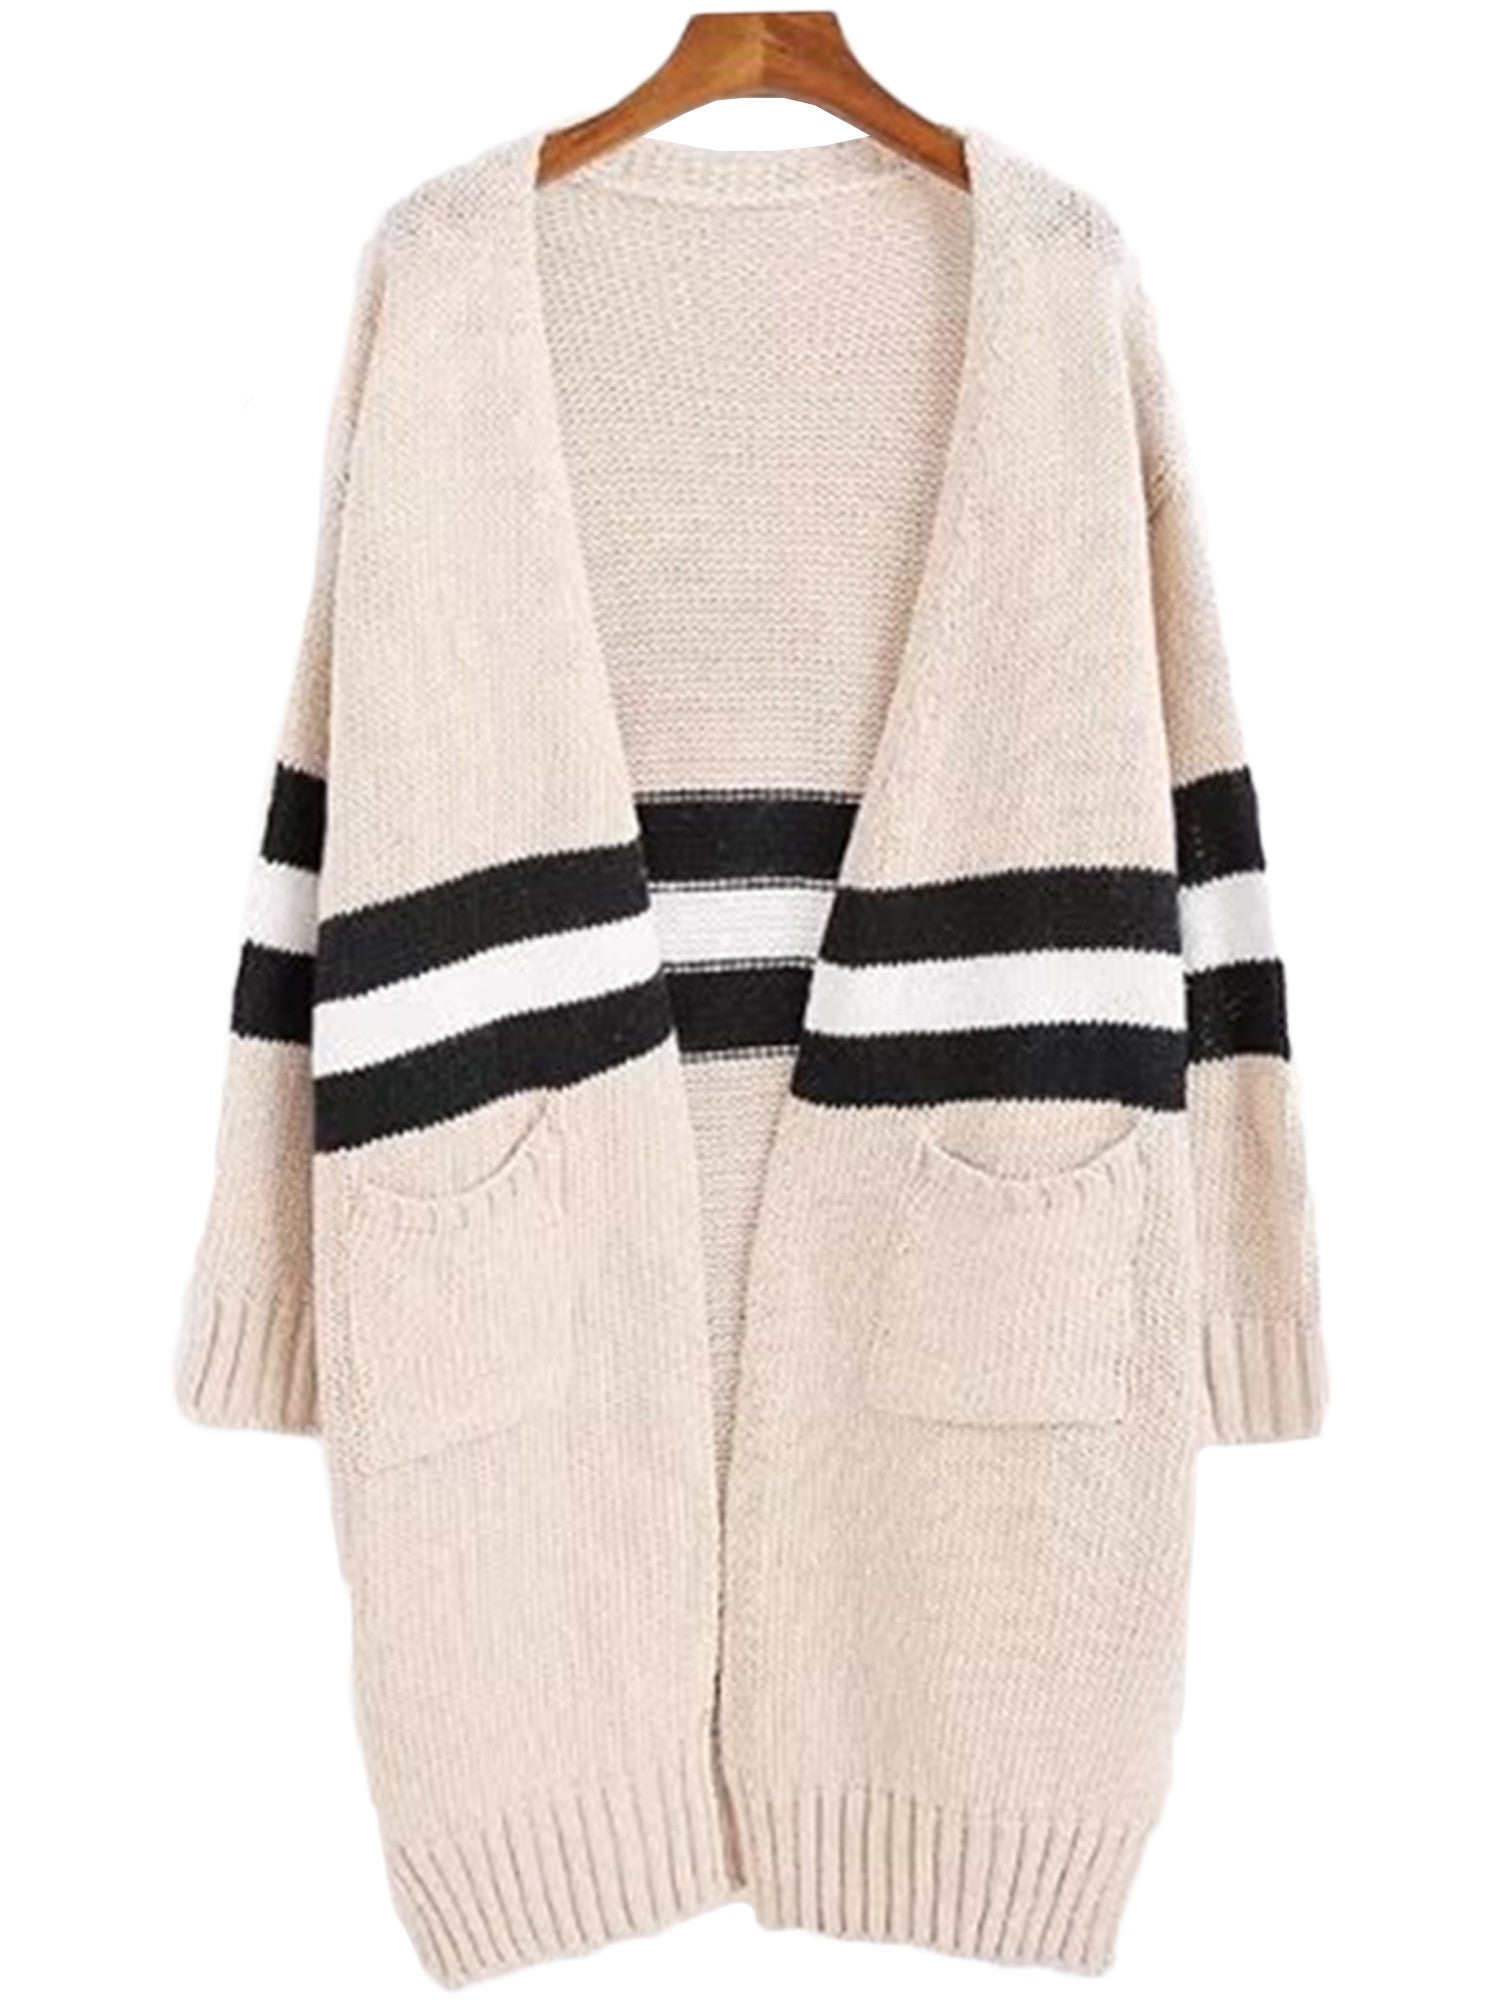 'Estrella' Topshop Stripe Colorblock Cardigan Goodnight Macaroon